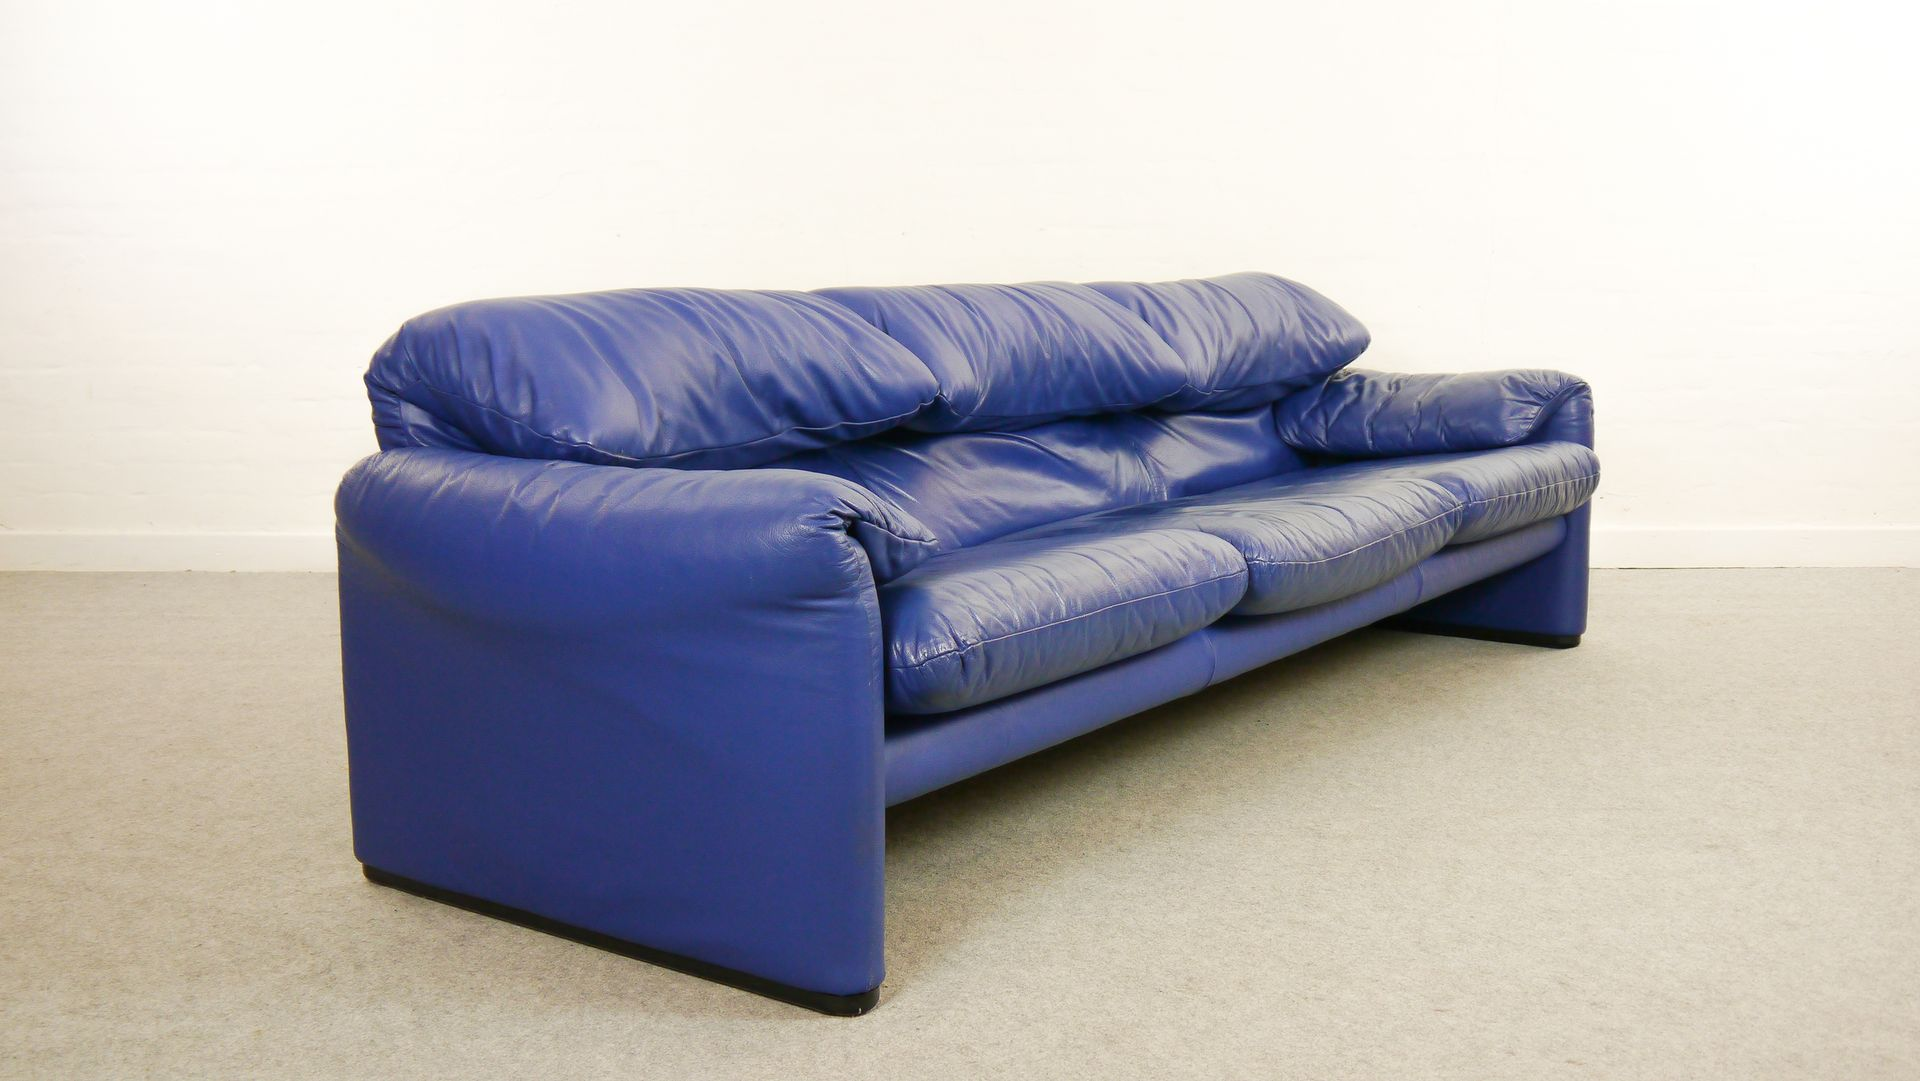 Blue Leather Maralunga 3 Seater Sofa by Vico Magistretti for